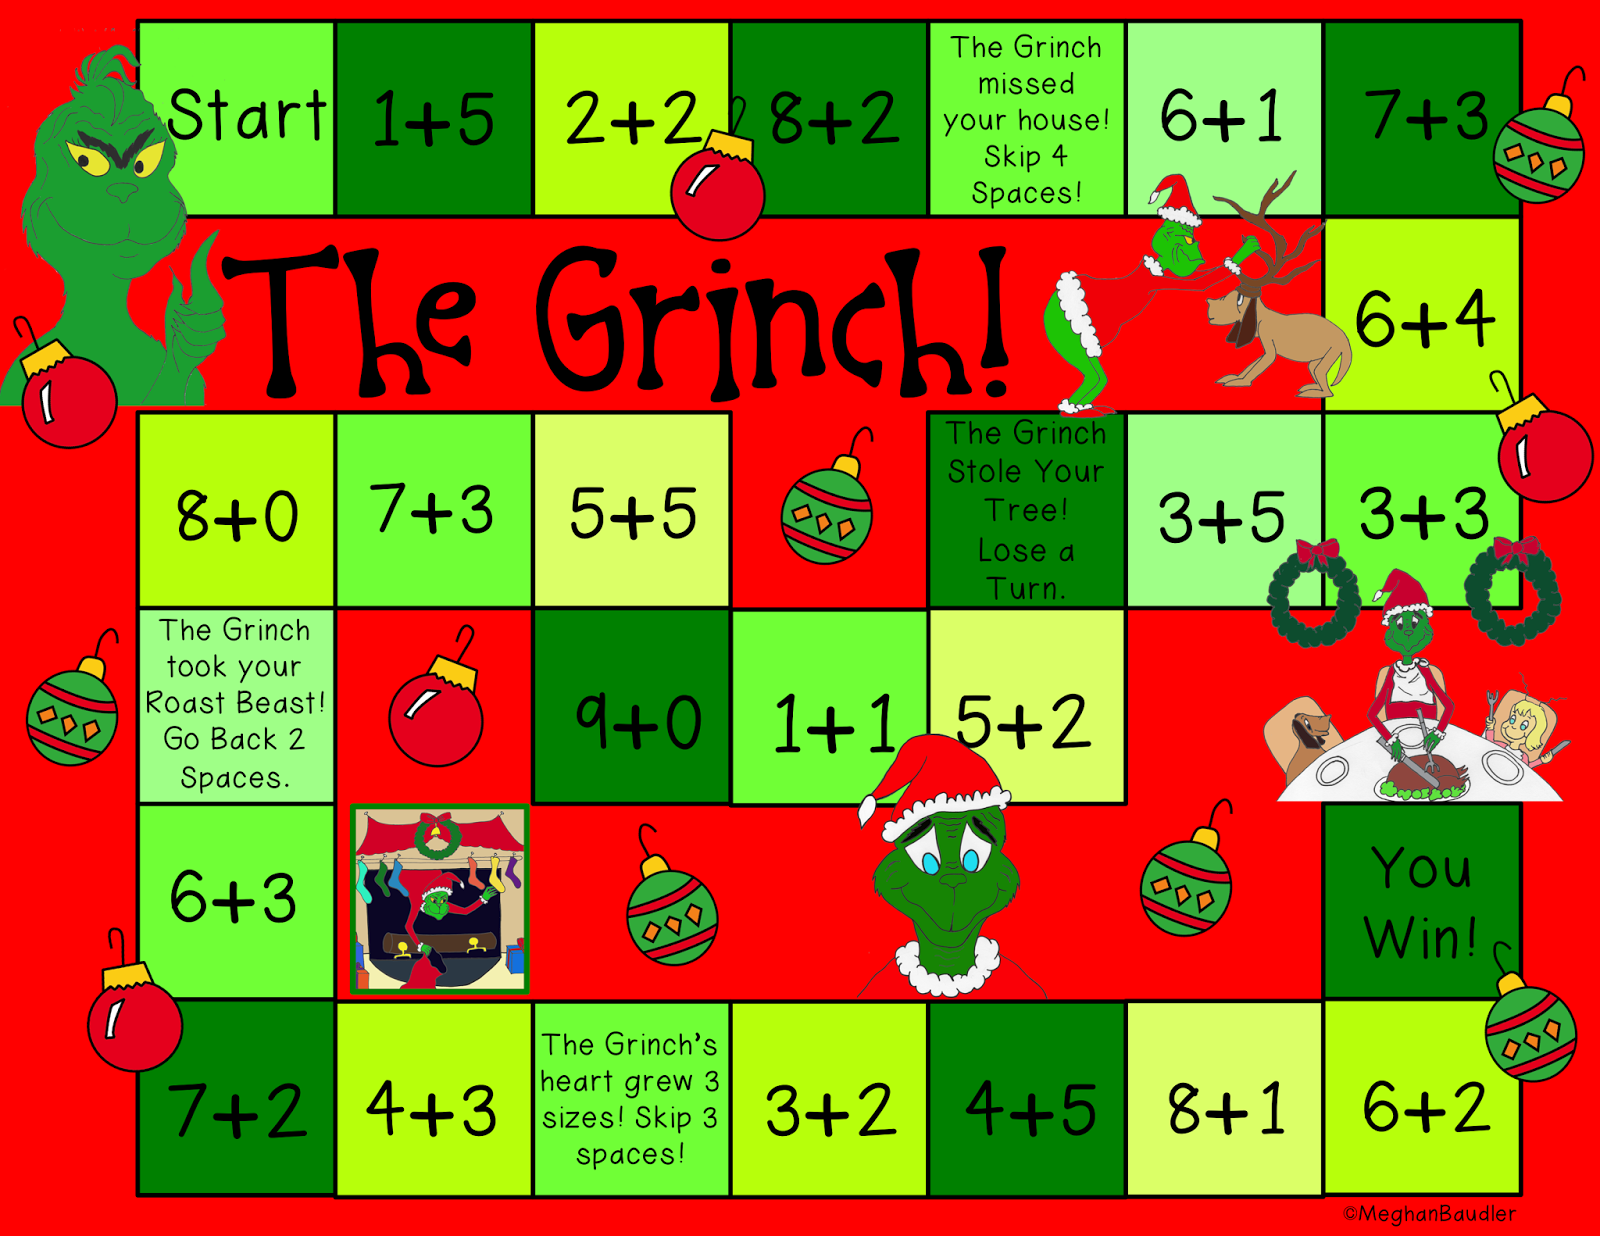 Grinch Day Plans